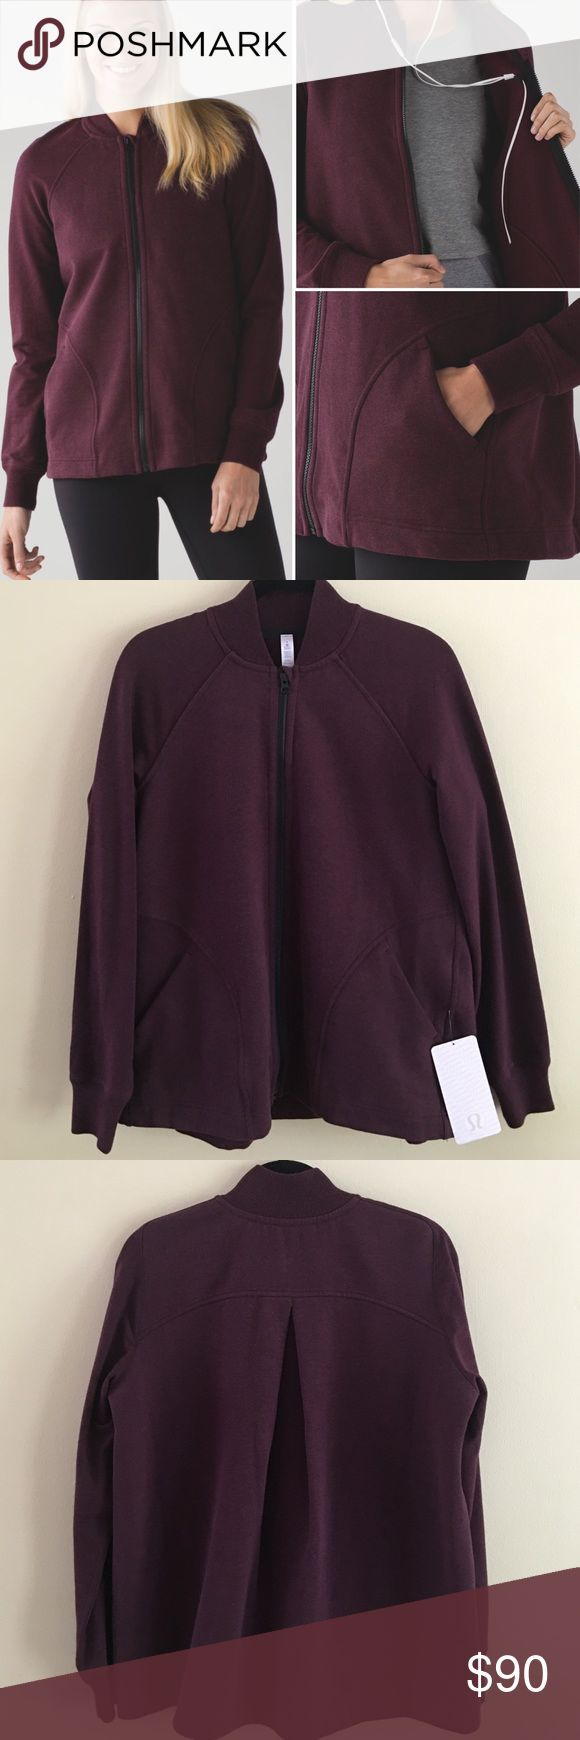 NWT Pleat To Street Bomber Brand new with tag.                                                Lululemon Pleat to street bomber jack Color: Heathered Bordeaux Drama  🚫No Trades 😊 Thank you lululemon athletica Jackets & Coats